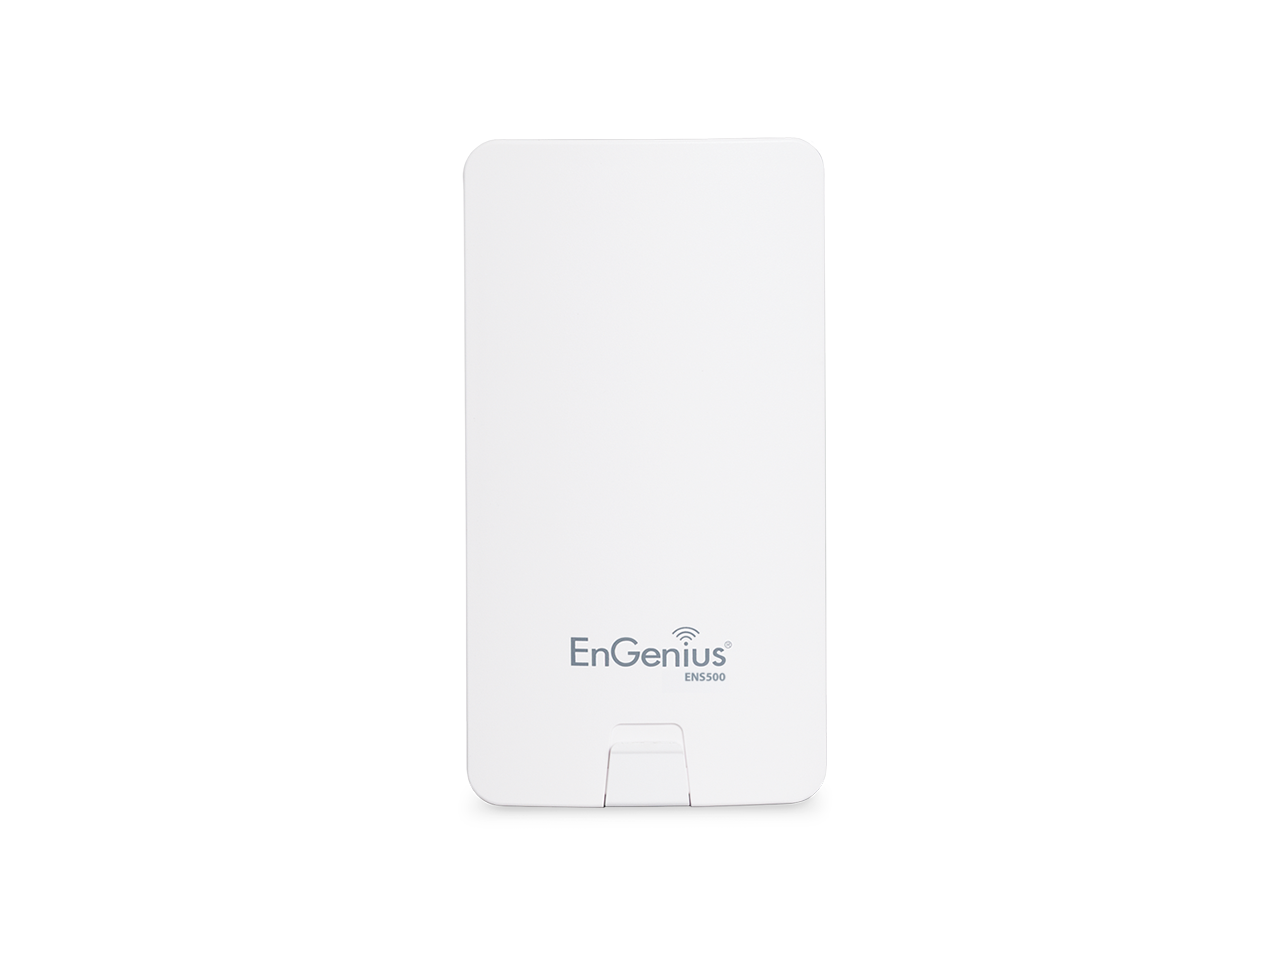 ENGENİUS ENS500 - Outdoor Wireless Ethernet Bridge; N300 5 GHz